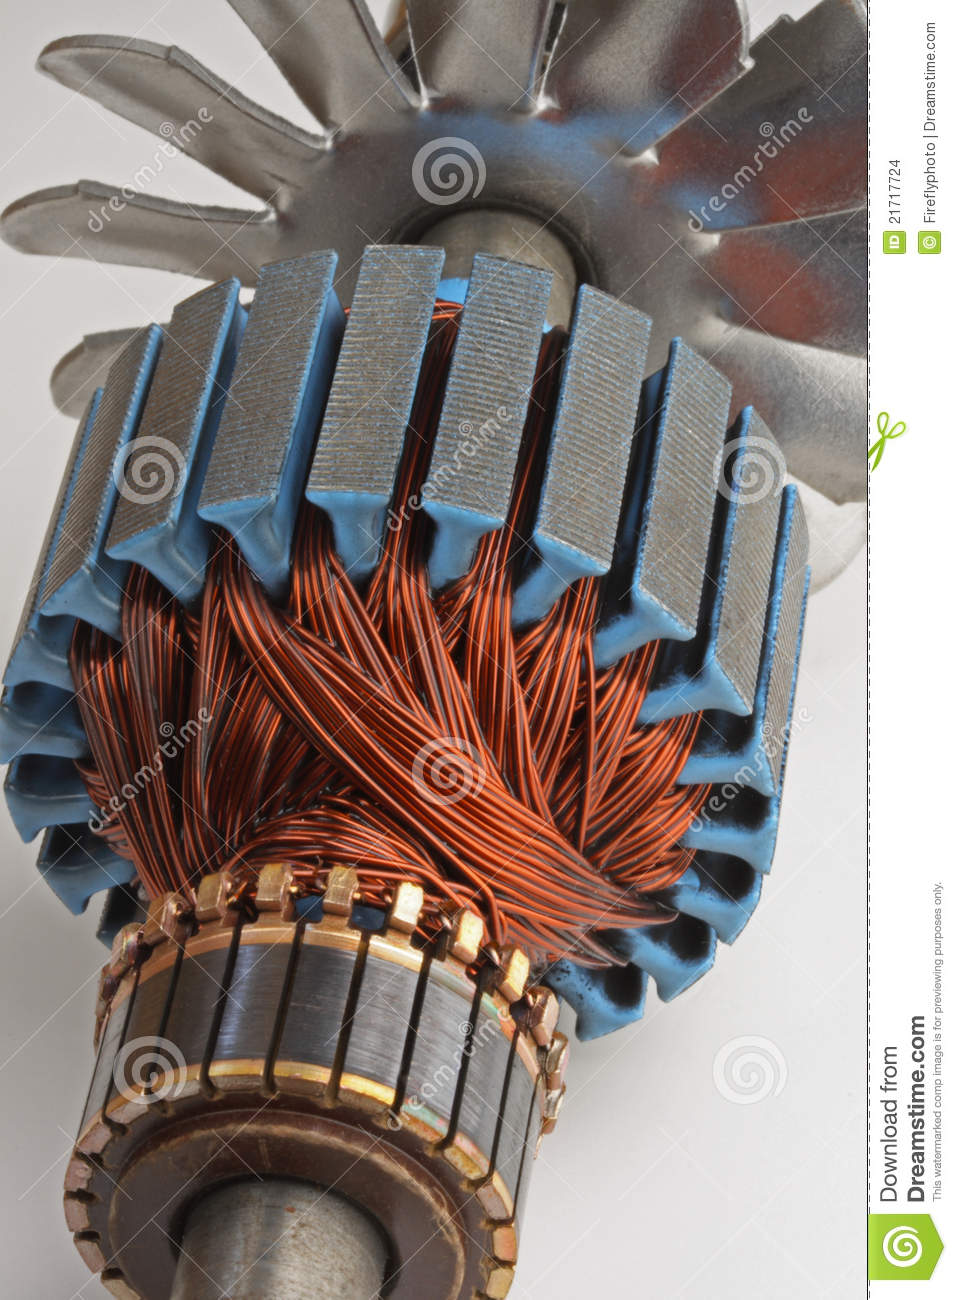 Motor Winding Machine also Motors together with US20130015264 as well Immagini Stock Bobine Del Rame Dal Motore Elettrico Image21717724 moreover 2516994. on electric motor stator